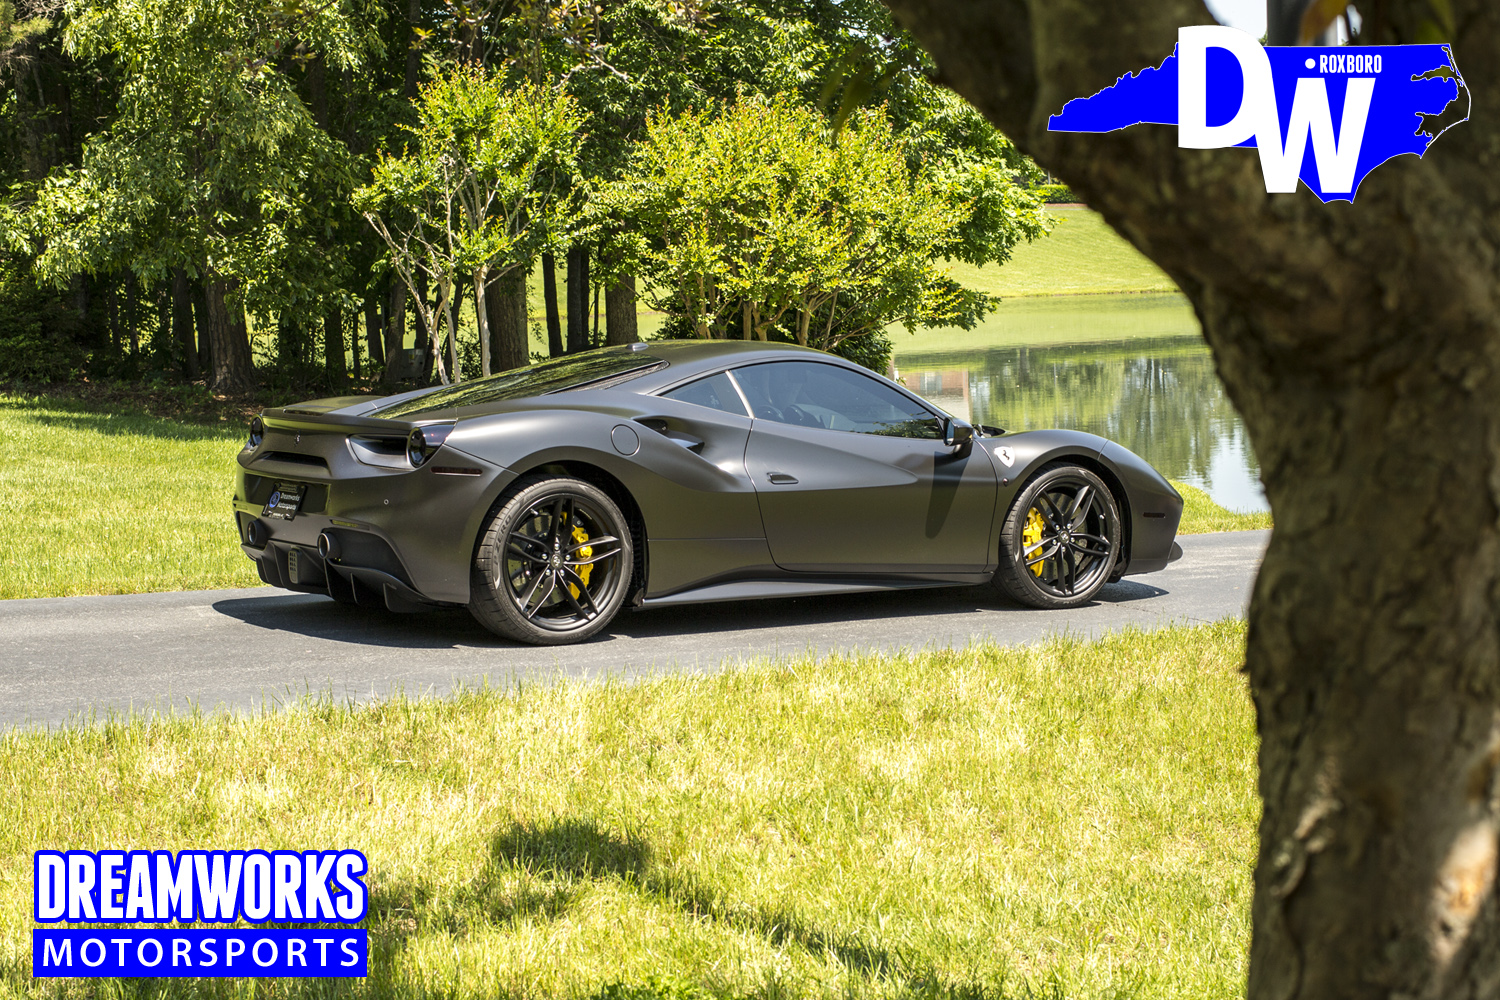 Ferrari_488_Satin_Black_Wrap_Murdered_Out_by_Dreamworks-Motorsports-3.jpg